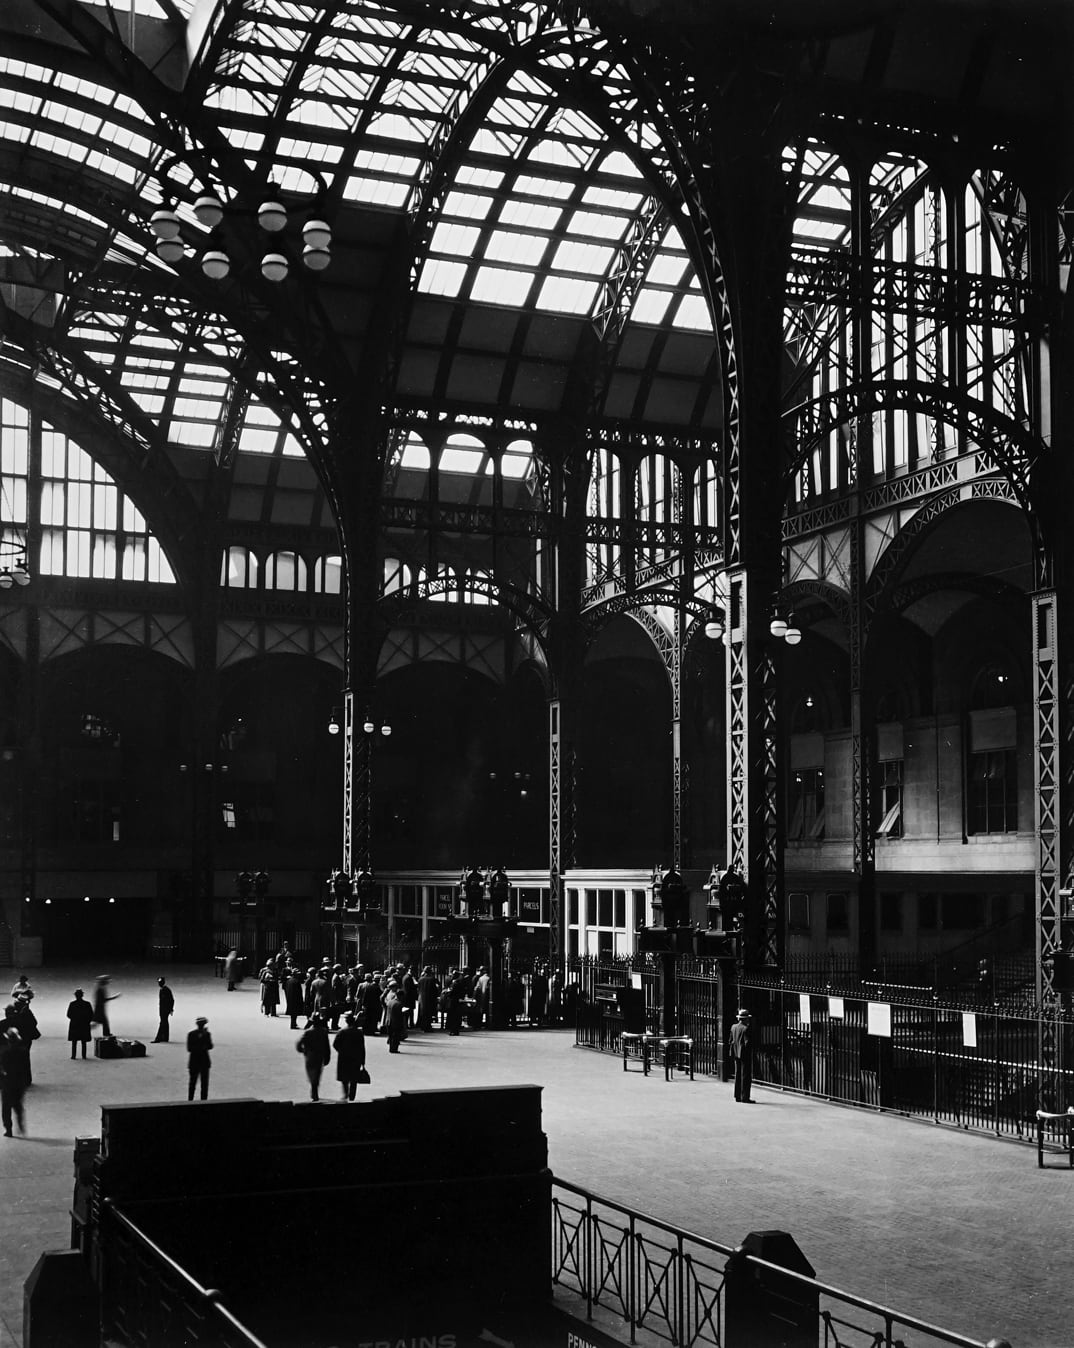 "Berenice Abbott 1898-1991Penn Station, New York City, 1936 (Printed 1970's) Signed in pencil on recto. Stamped on verso. Gelatin Silver Print Image - 10.75""x13.5"", Mounted - 16""x20"", Matted - 20""x24"""